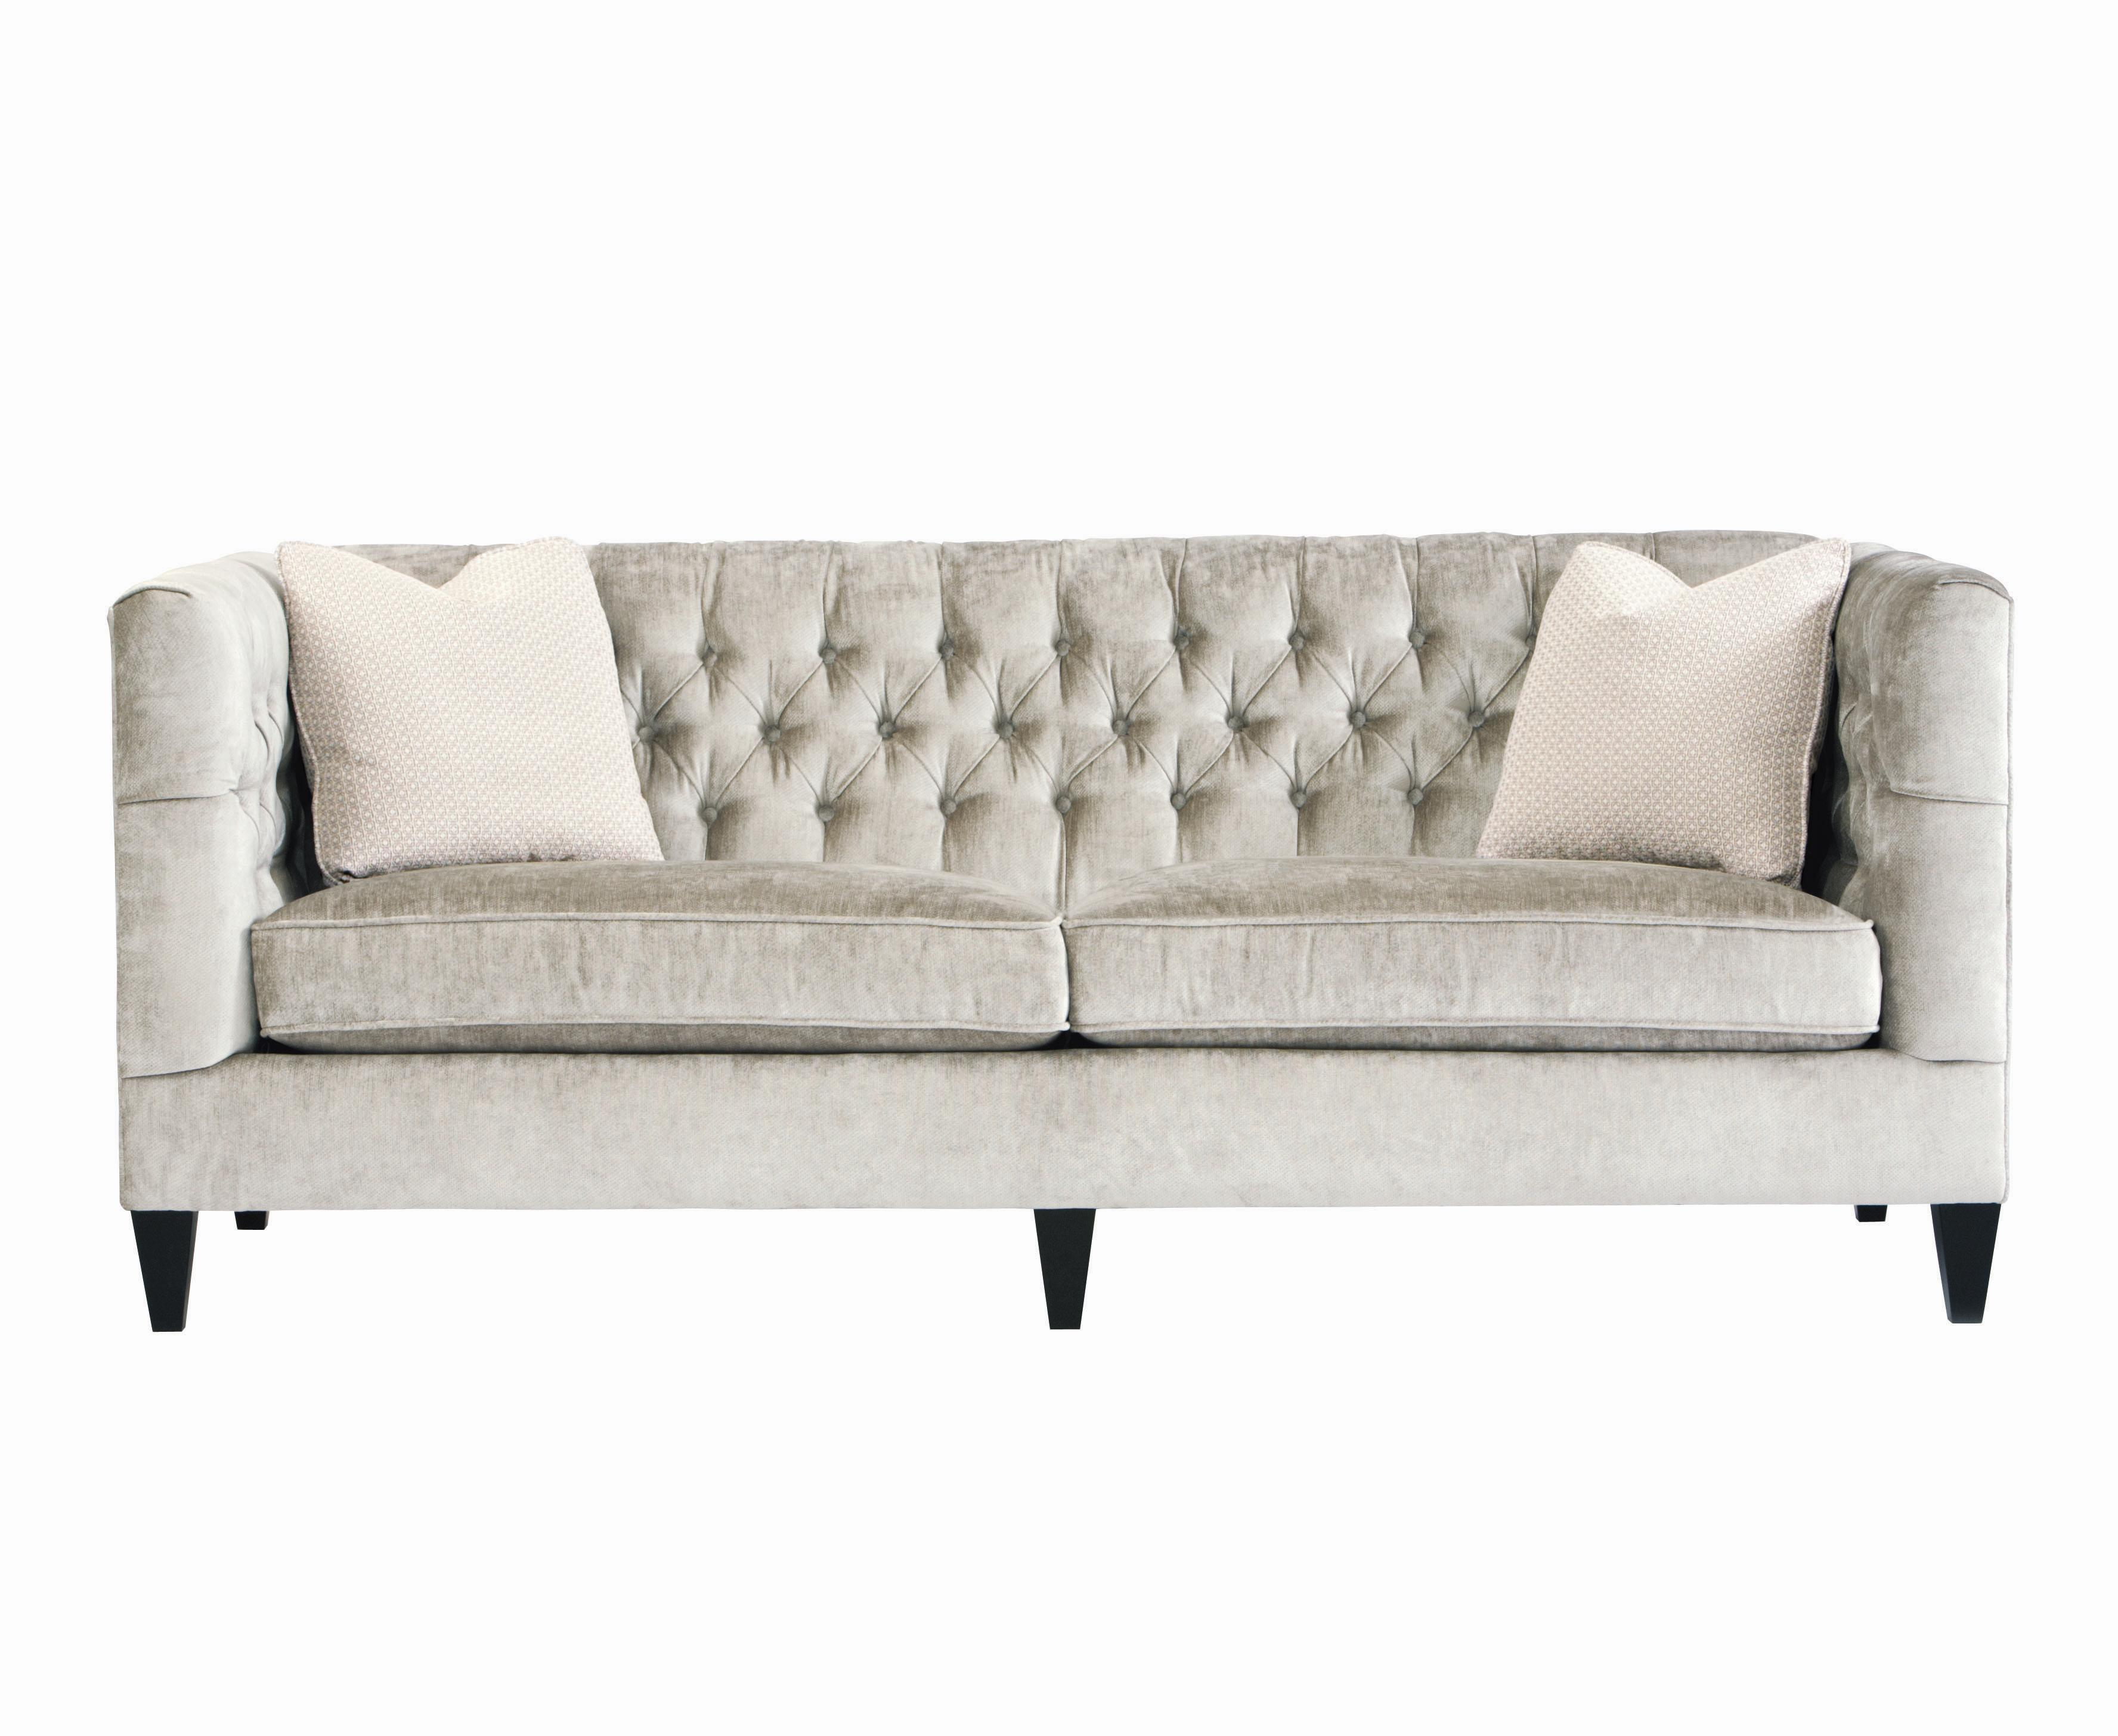 Interiors - Beckett Sofa at Williams & Kay